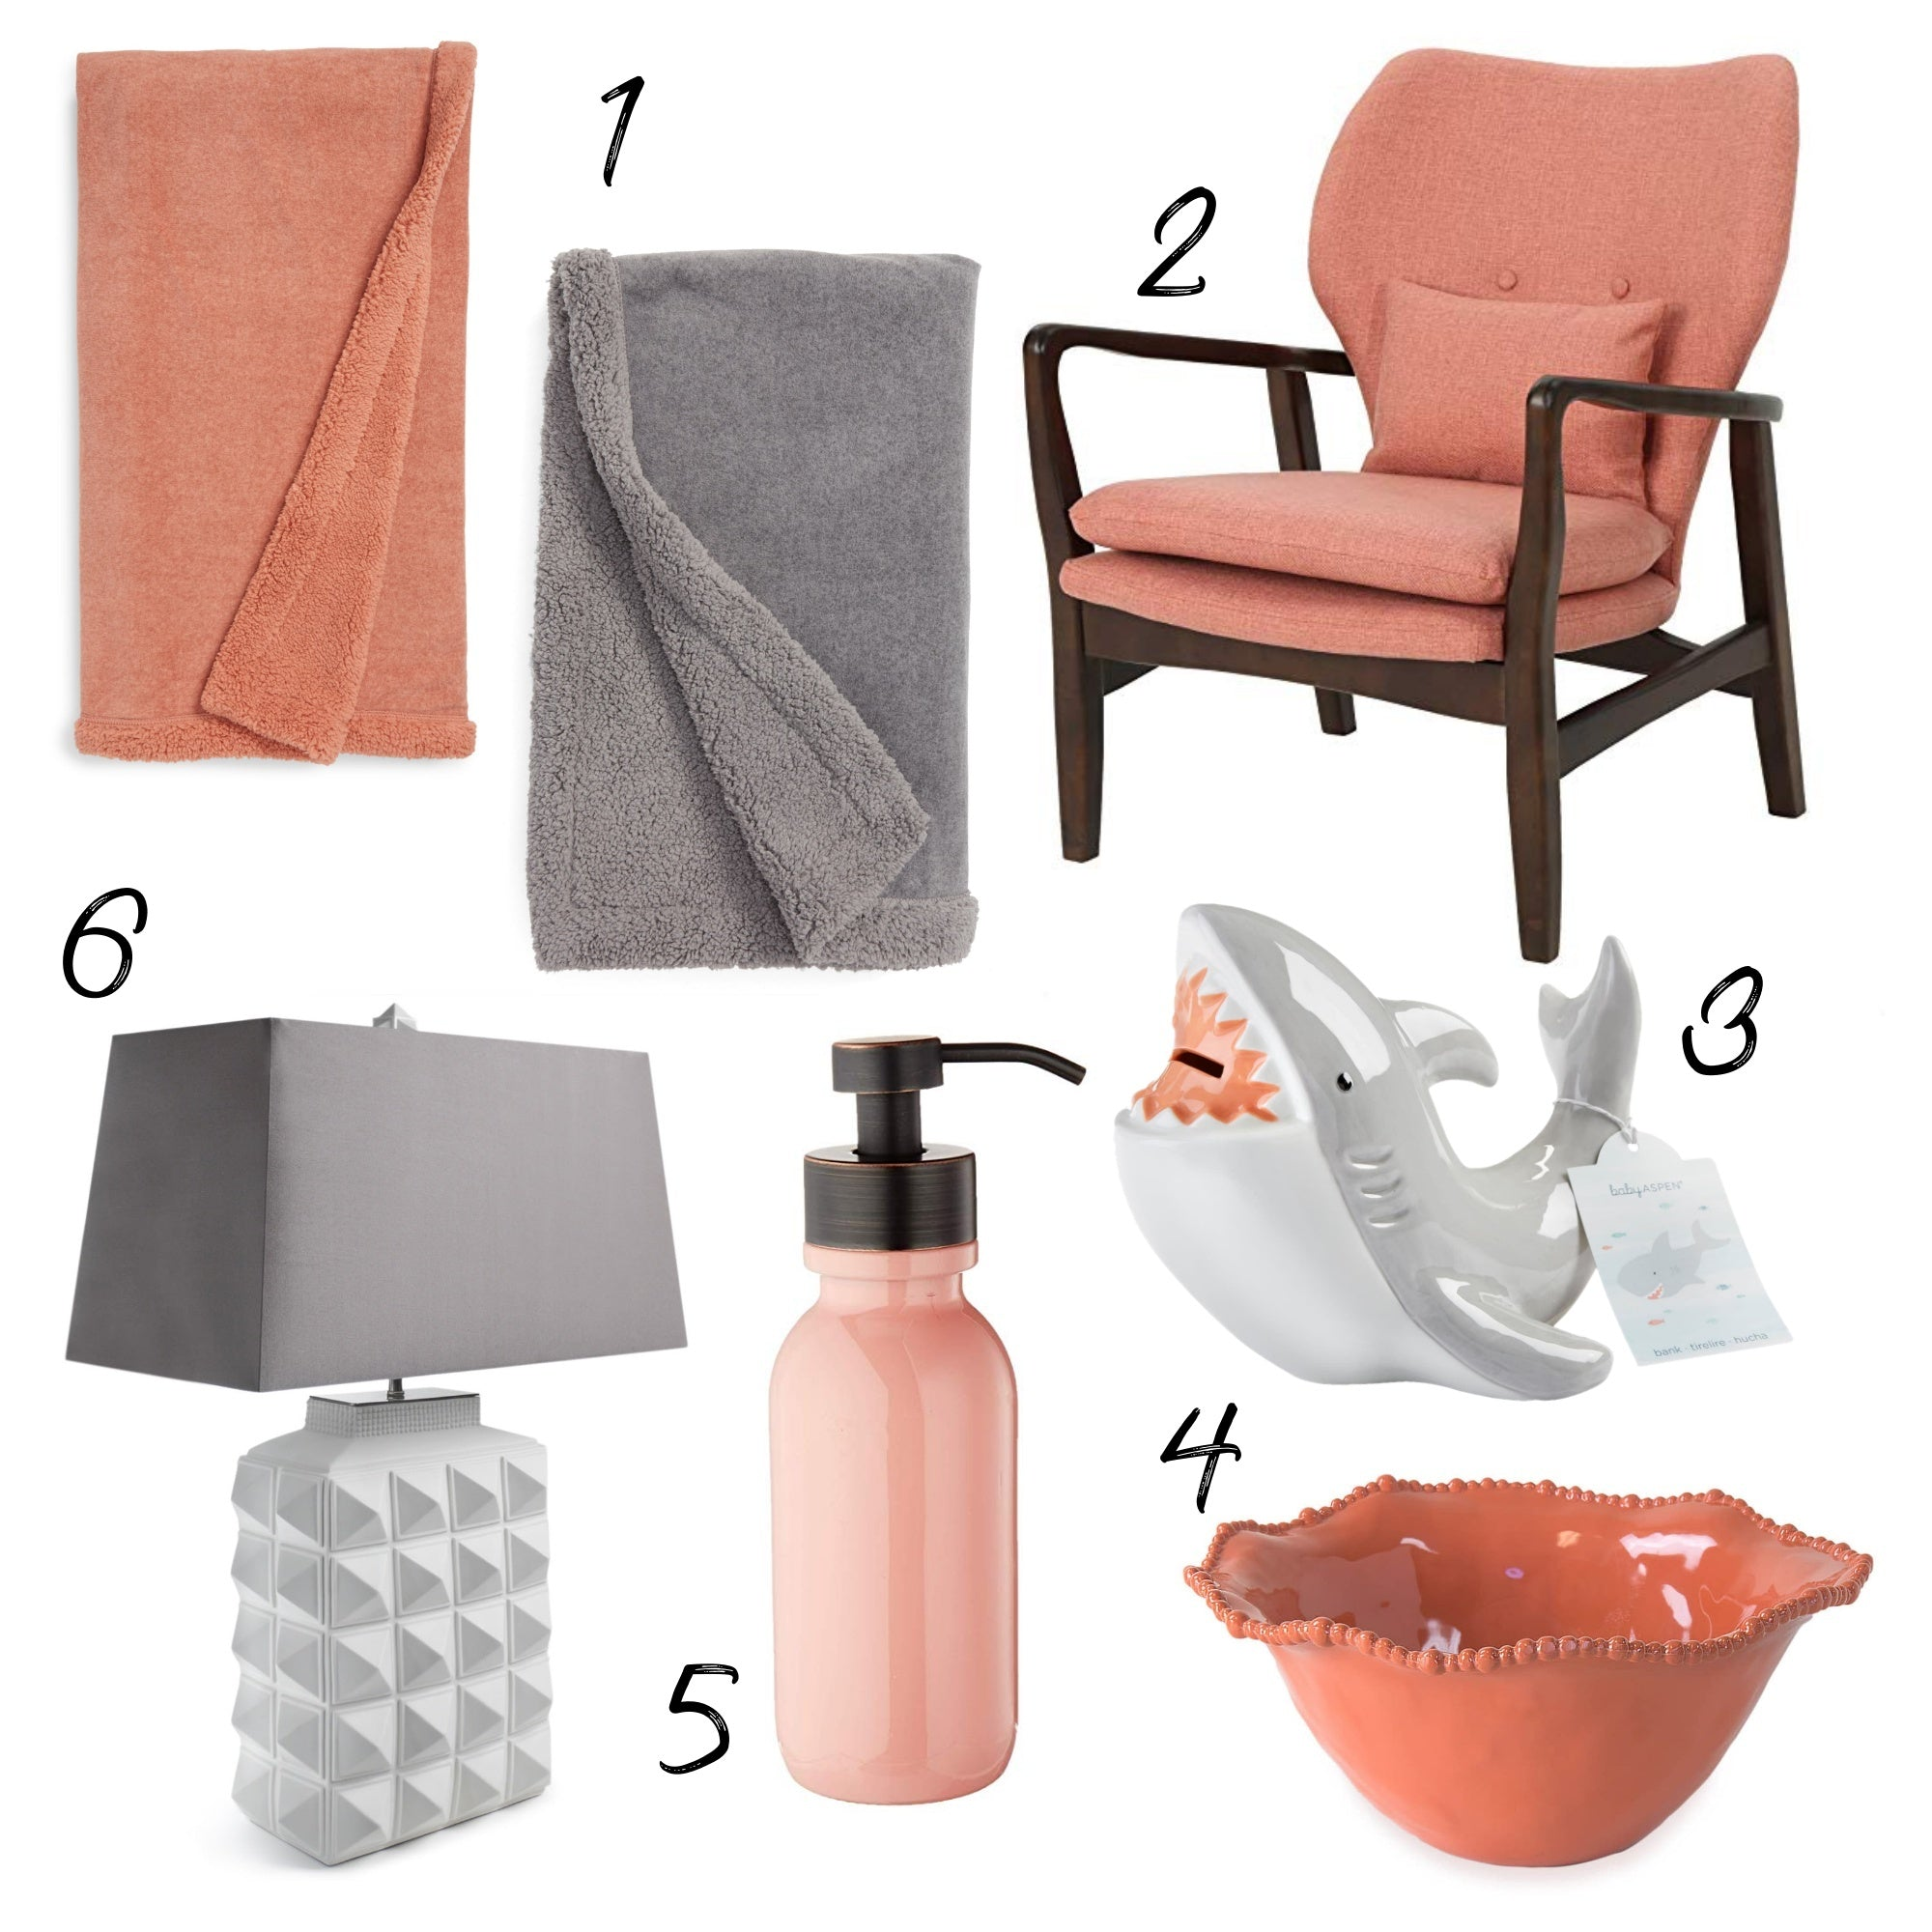 Color Craze: Salmon and Glacier Gray Product Board